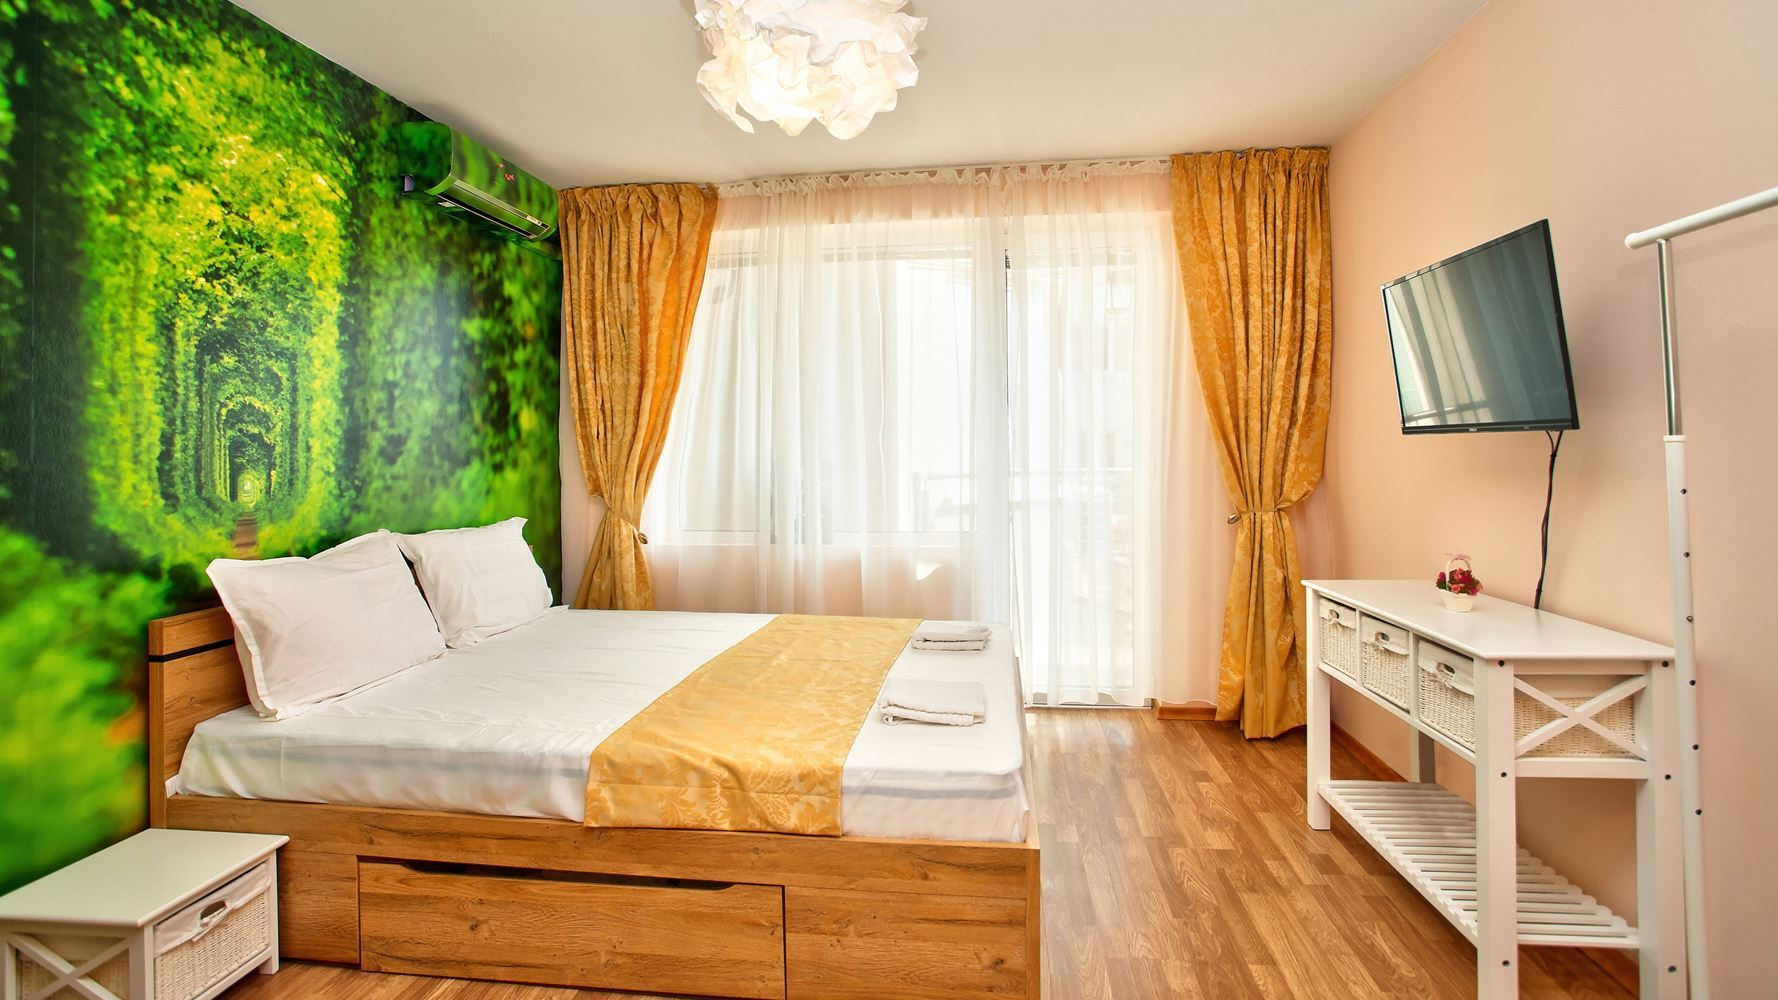 1-bedroom Apartment for Rent, Center